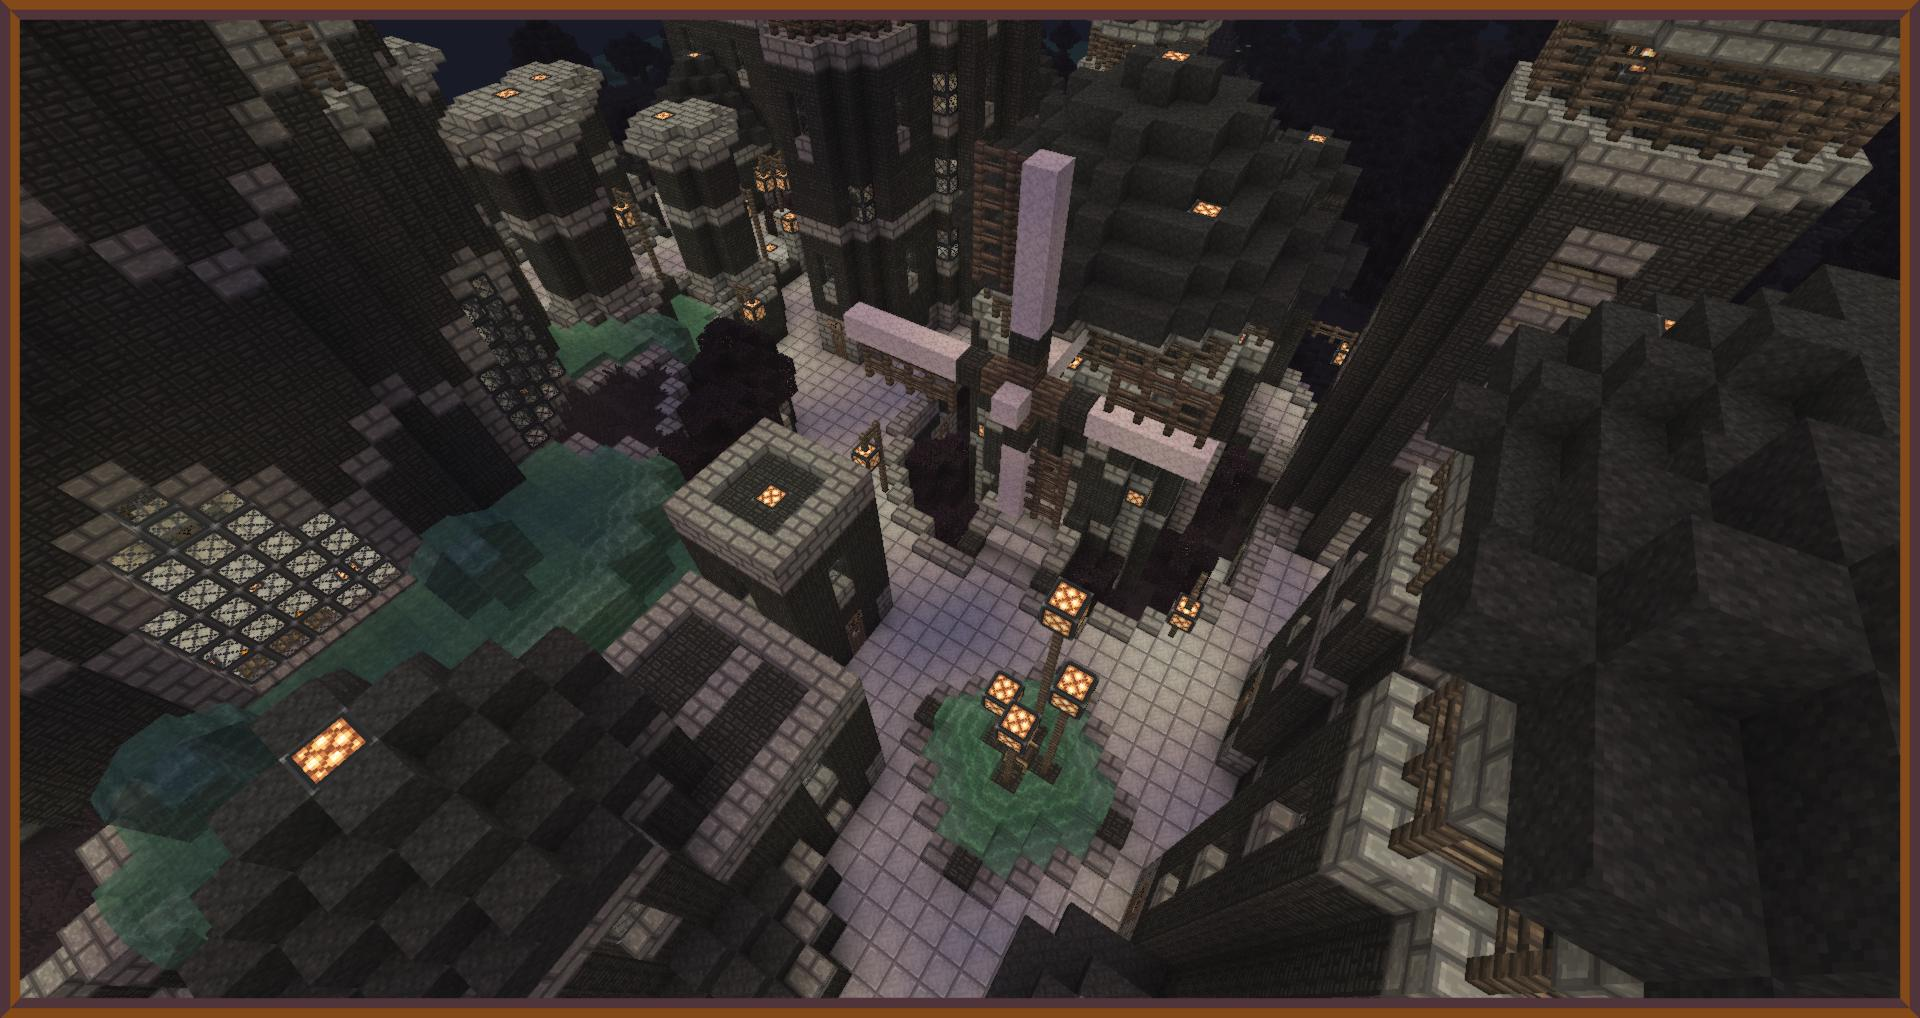 http://minecraft-forum.net/wp-content/uploads/2013/09/c4659__Mystery-of-the-Pumpkin-Castle-Map-2.jpg